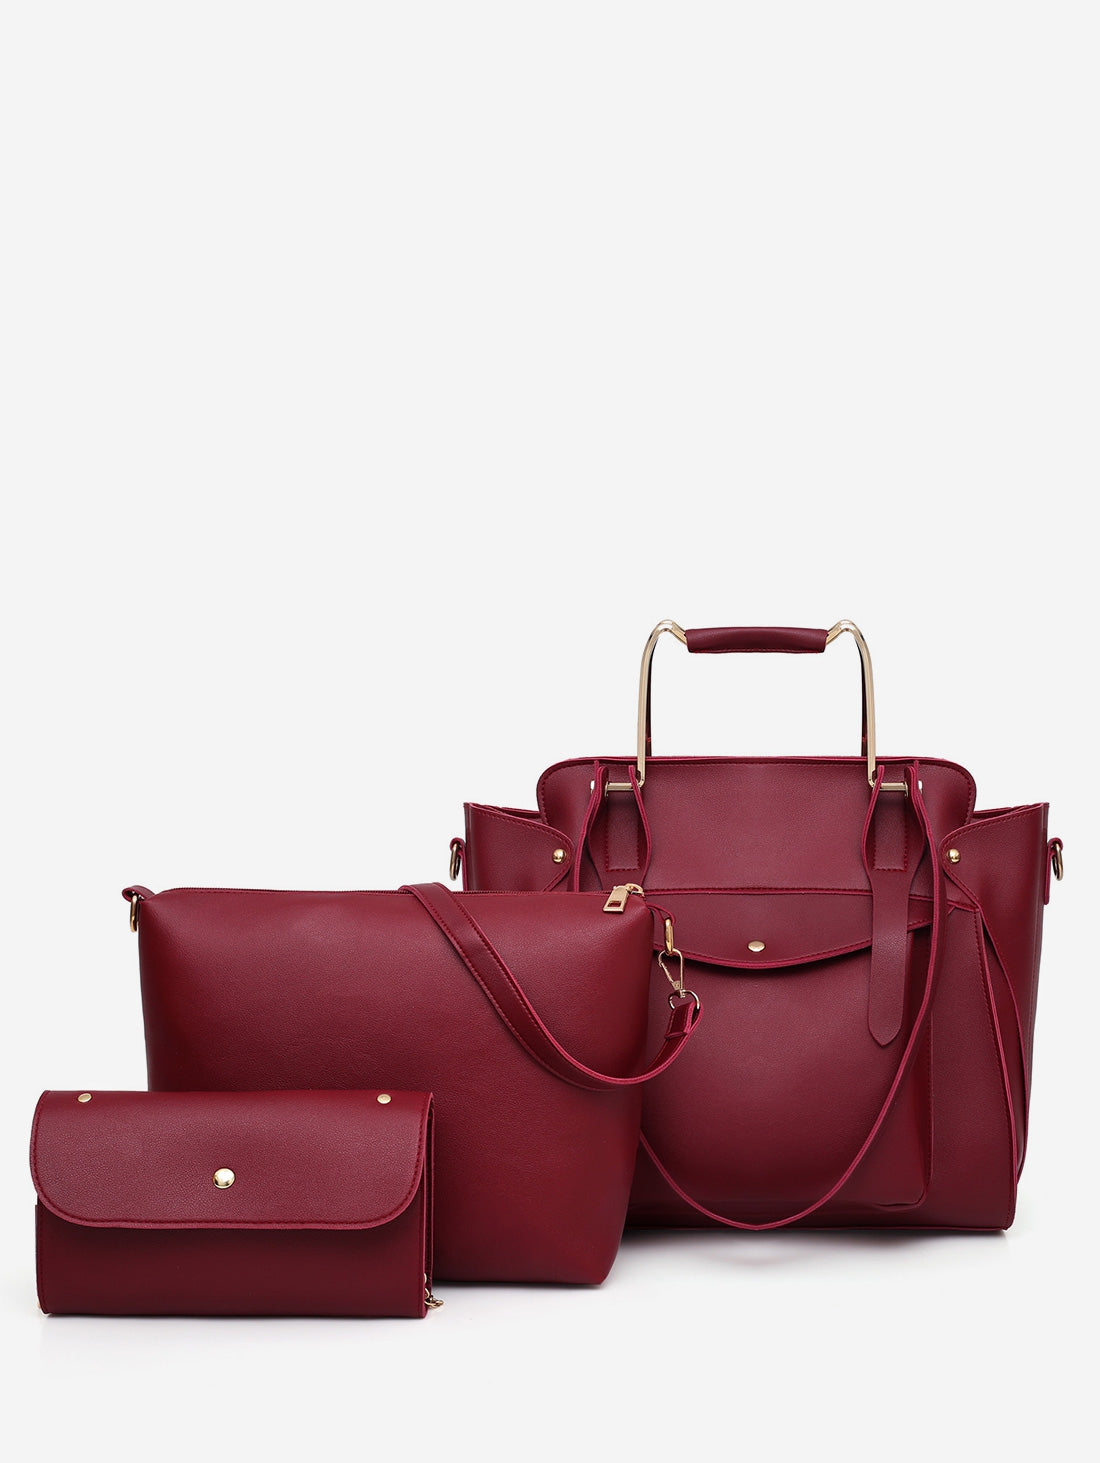 3 Pieces Large Capacity Travel Tote Bag SetRED WINE